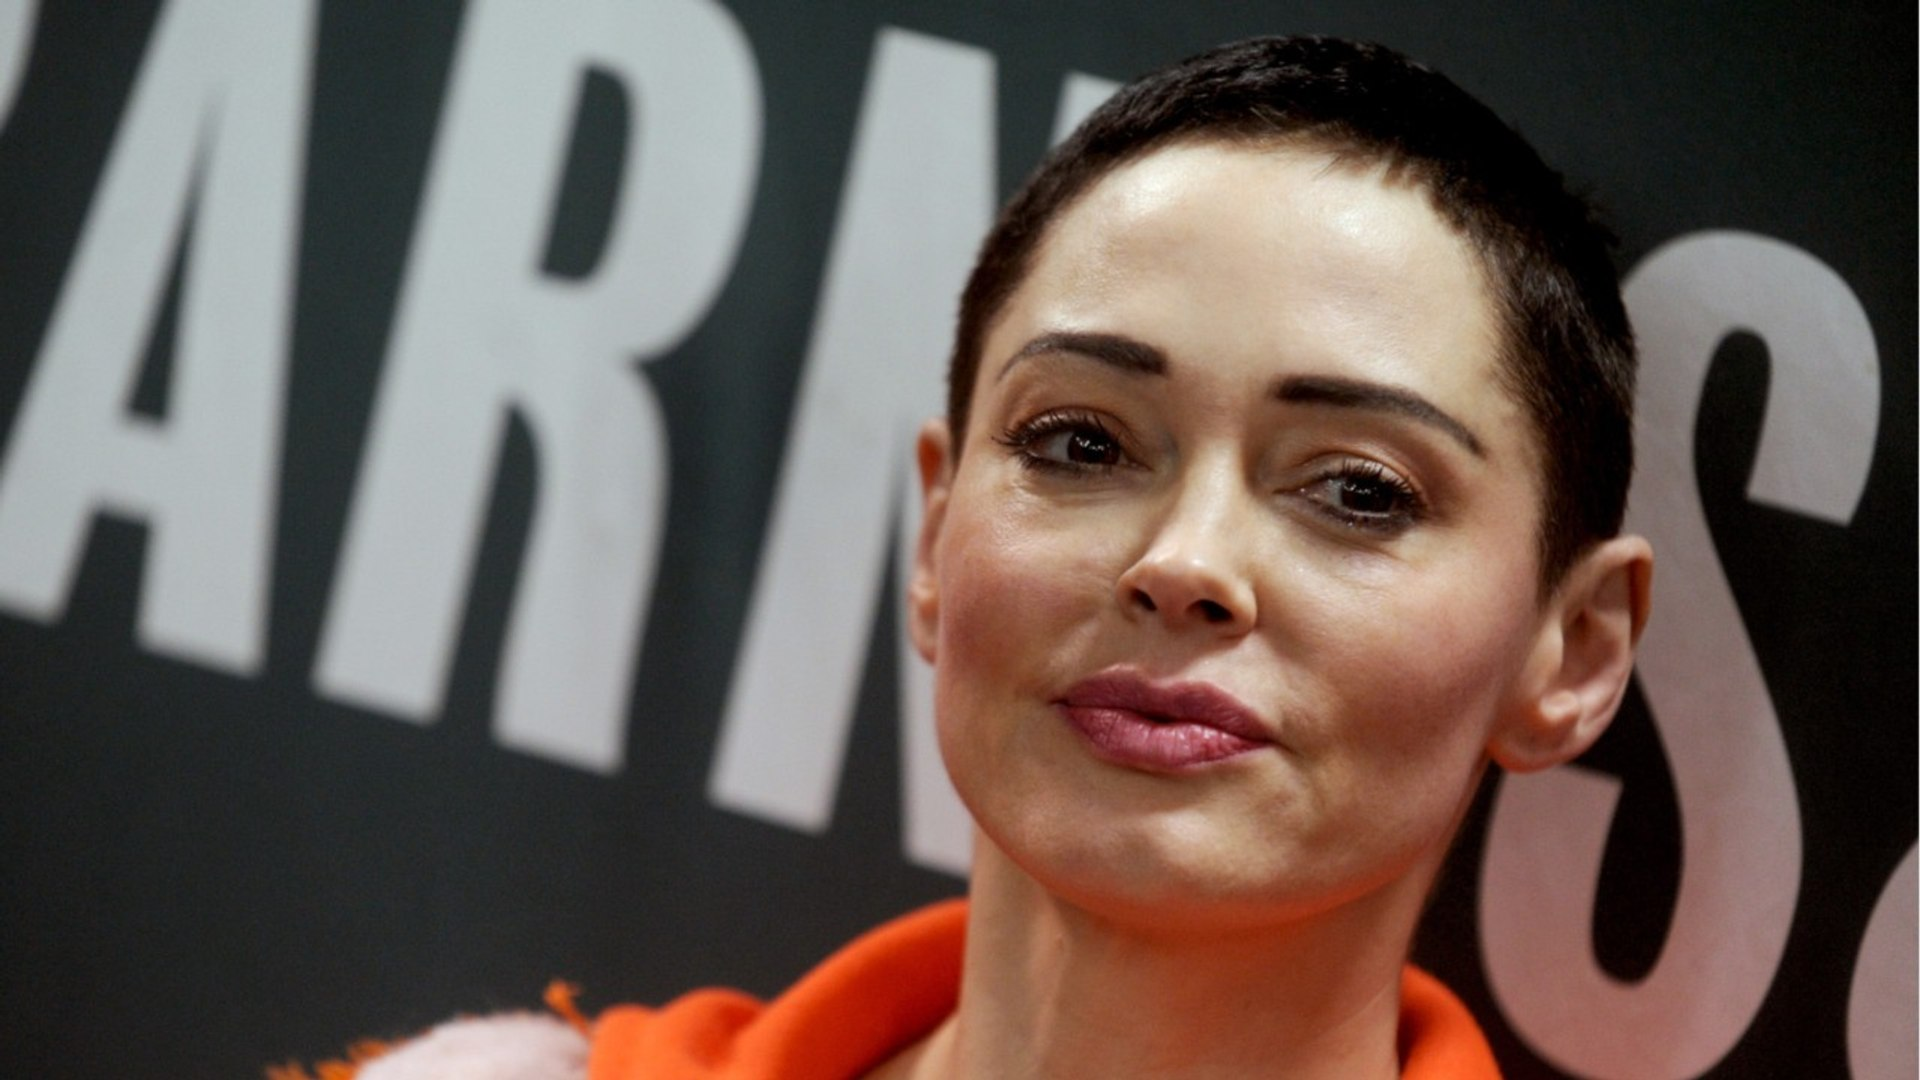 Rose McGowan Says Weinstein's Team 'Are Going To Be Empty Suits In Their Coffins'